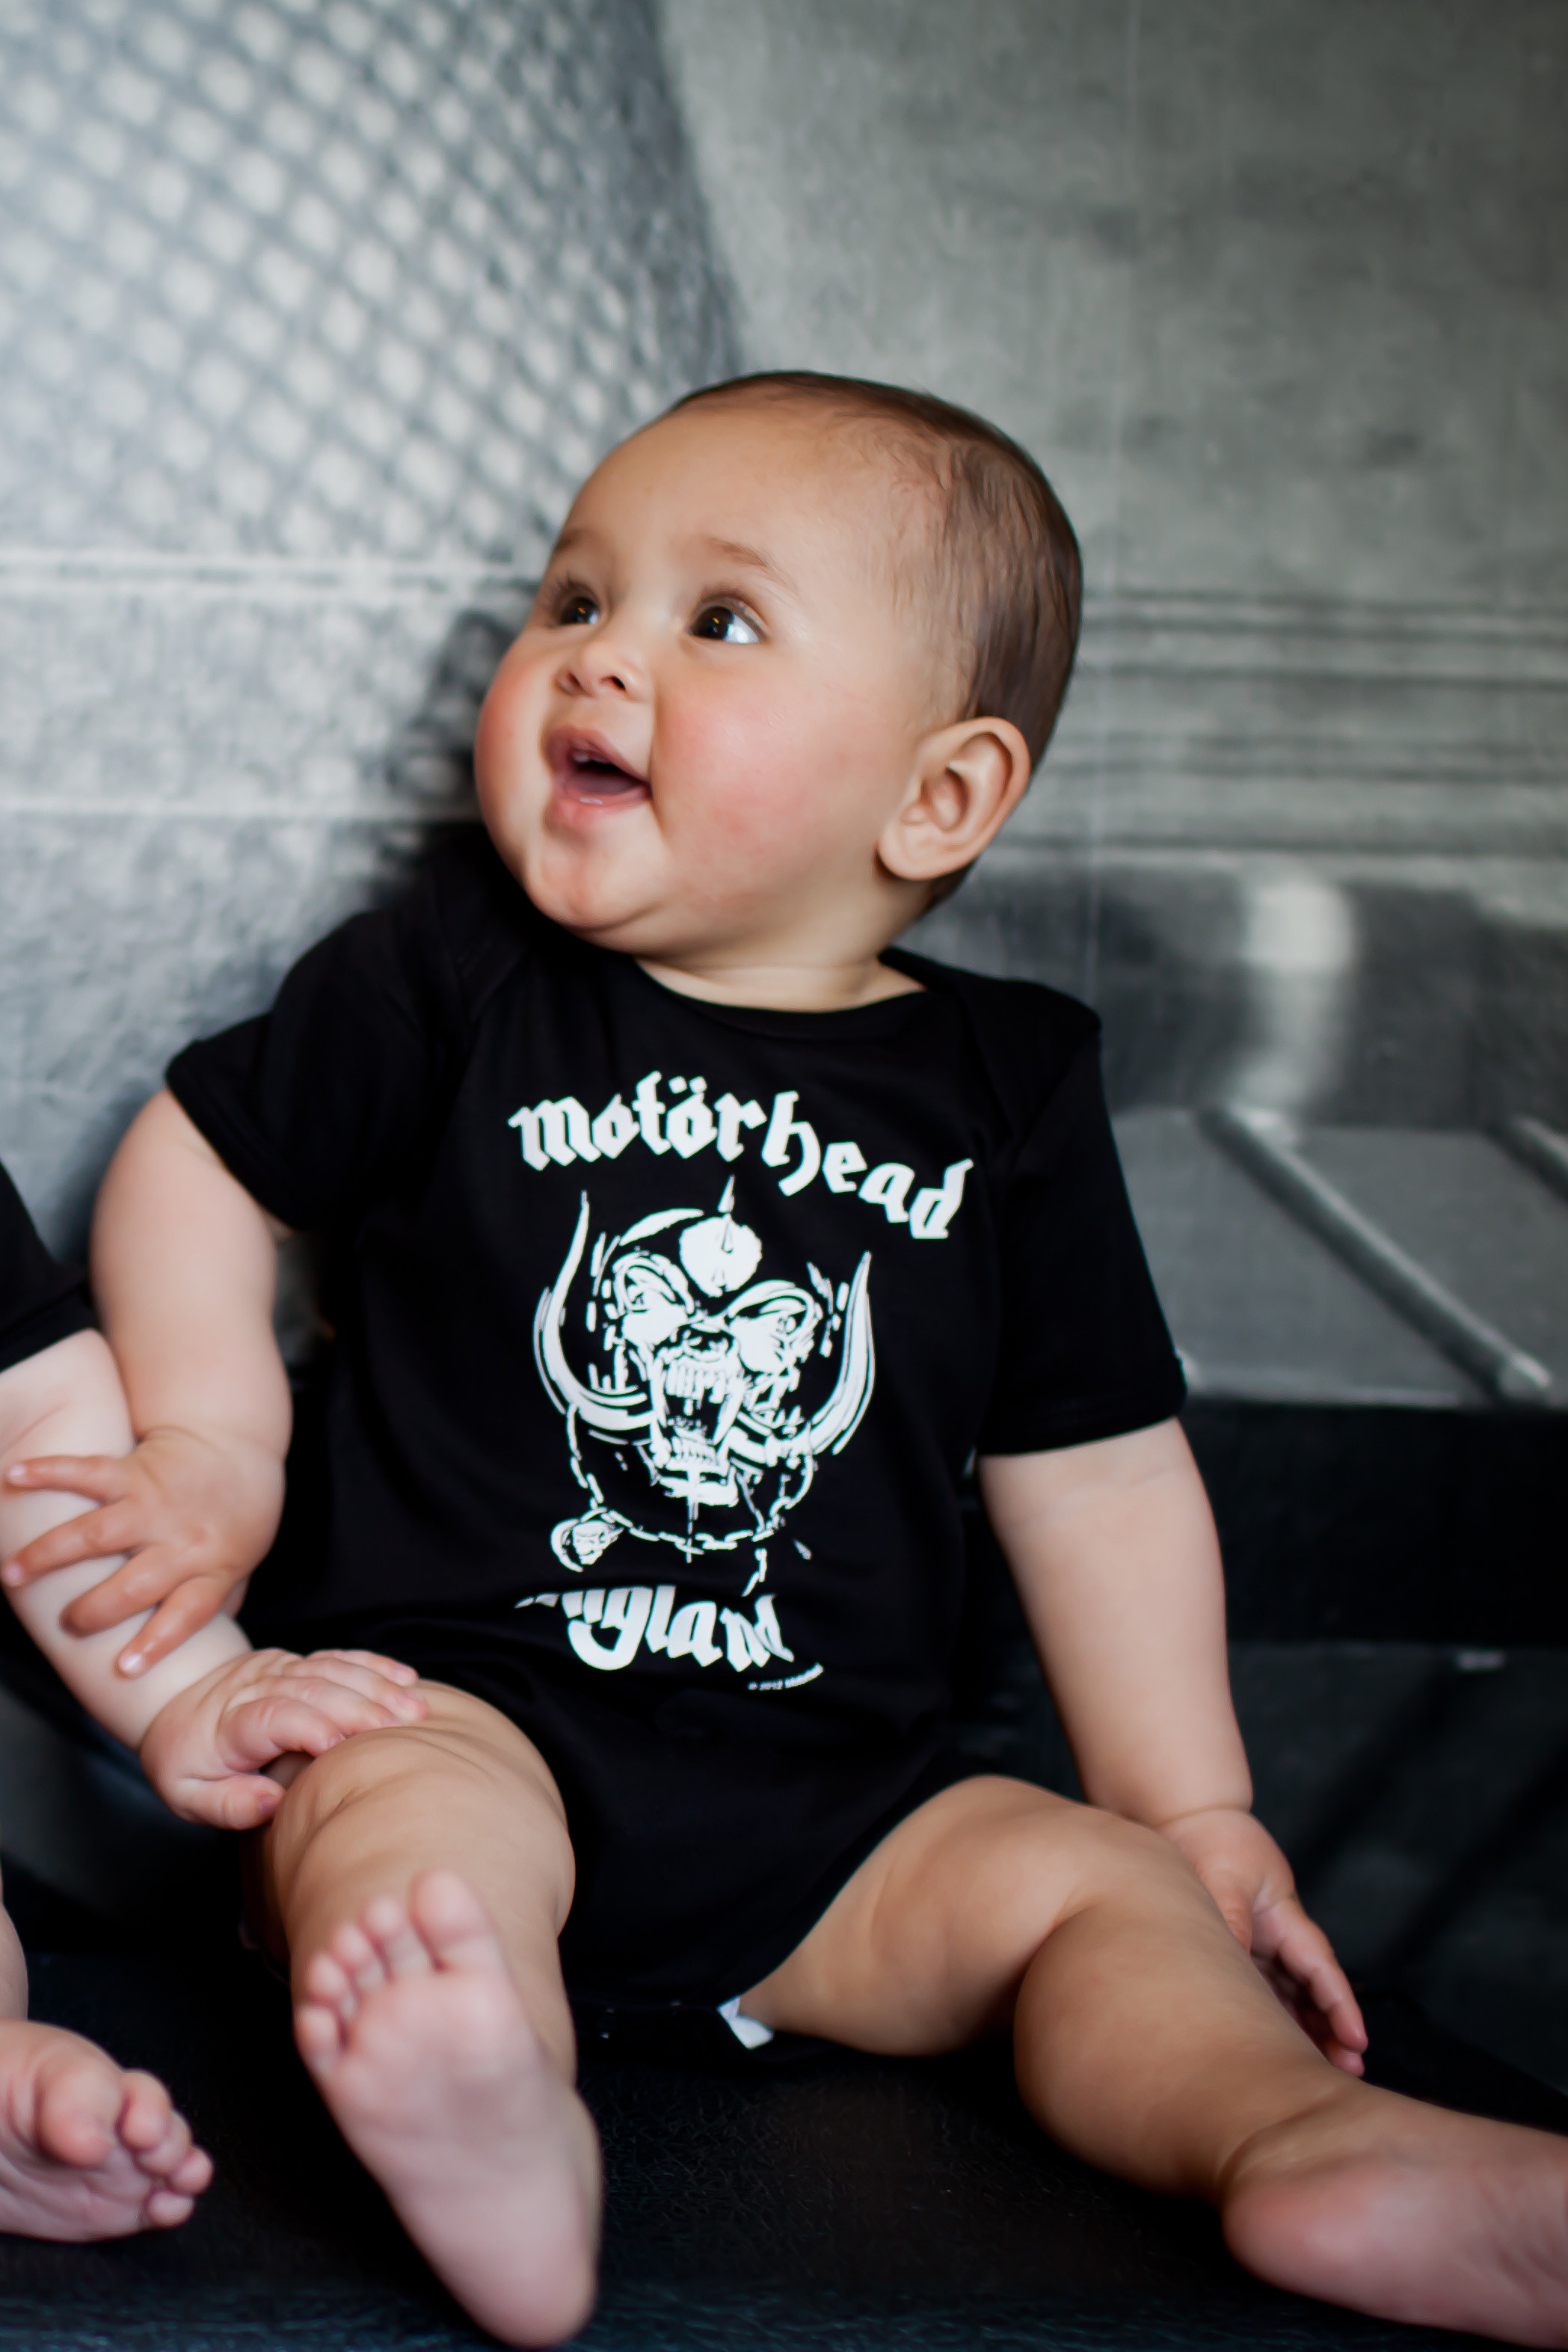 Motorhead baby onesies for little rockers